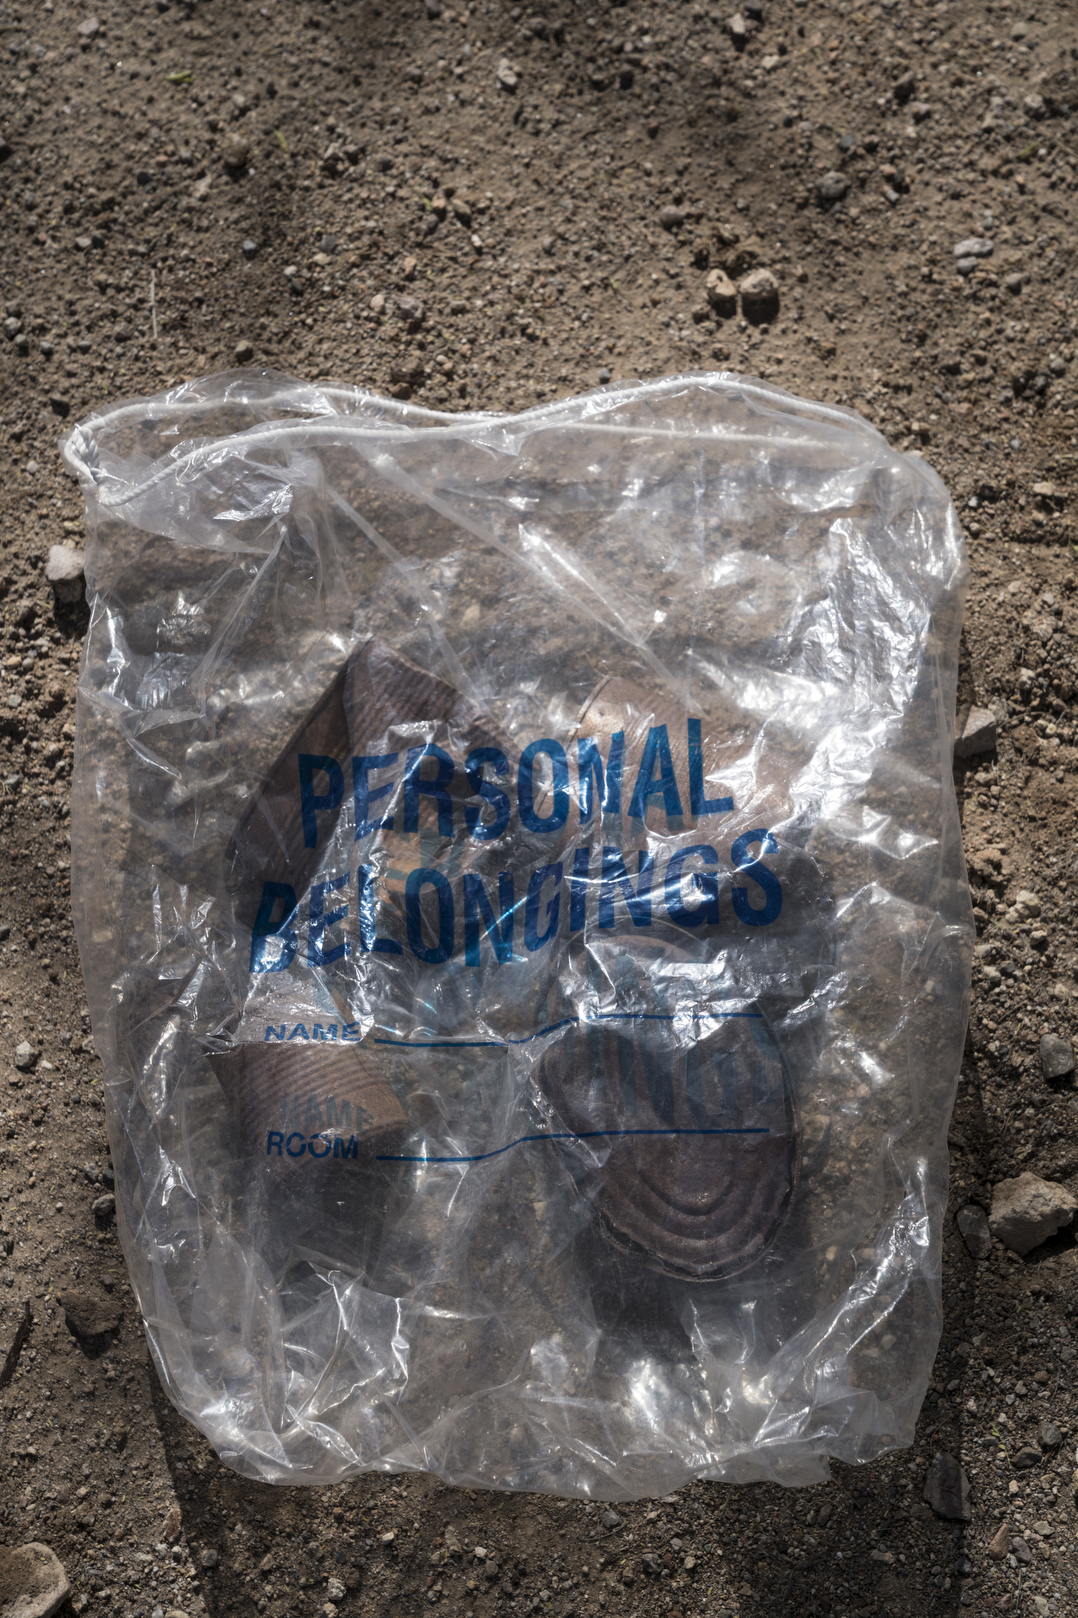 TUCSON, AZ - MARCH 13, 2020: Detail of items that Dora Rodriguez collected in July 2019 from the site where she was rescued in 1980 as a young asylum seeker crossing the Sonoran desert. Dora went back to the location with artist Alvaro Enciso in order to lay a cross at the site. In 1980 19-year-old Dora Rodriguez, from El Salvador, made the difficult journey of crossing into the US near Lukeville, AZ on foot. Of the 26 individuals she crossed the Sonoran desert with 13 died in the gruelling heat, one of the pre-eminent events that led to the Sanctuary Movement. Dora eventually naturalised in the US and started an advocacy group, Salvavision Rescue Arizona, to support asylum-seekers. On a weekly basis Dora visits asylum seekers in detention centres, writes them letters, fundraises and brings donated supplies to the migrant camps on the Mexican side of the US - Mexico border.  Photo by Kitra Cahana/MAPS for The Intercept